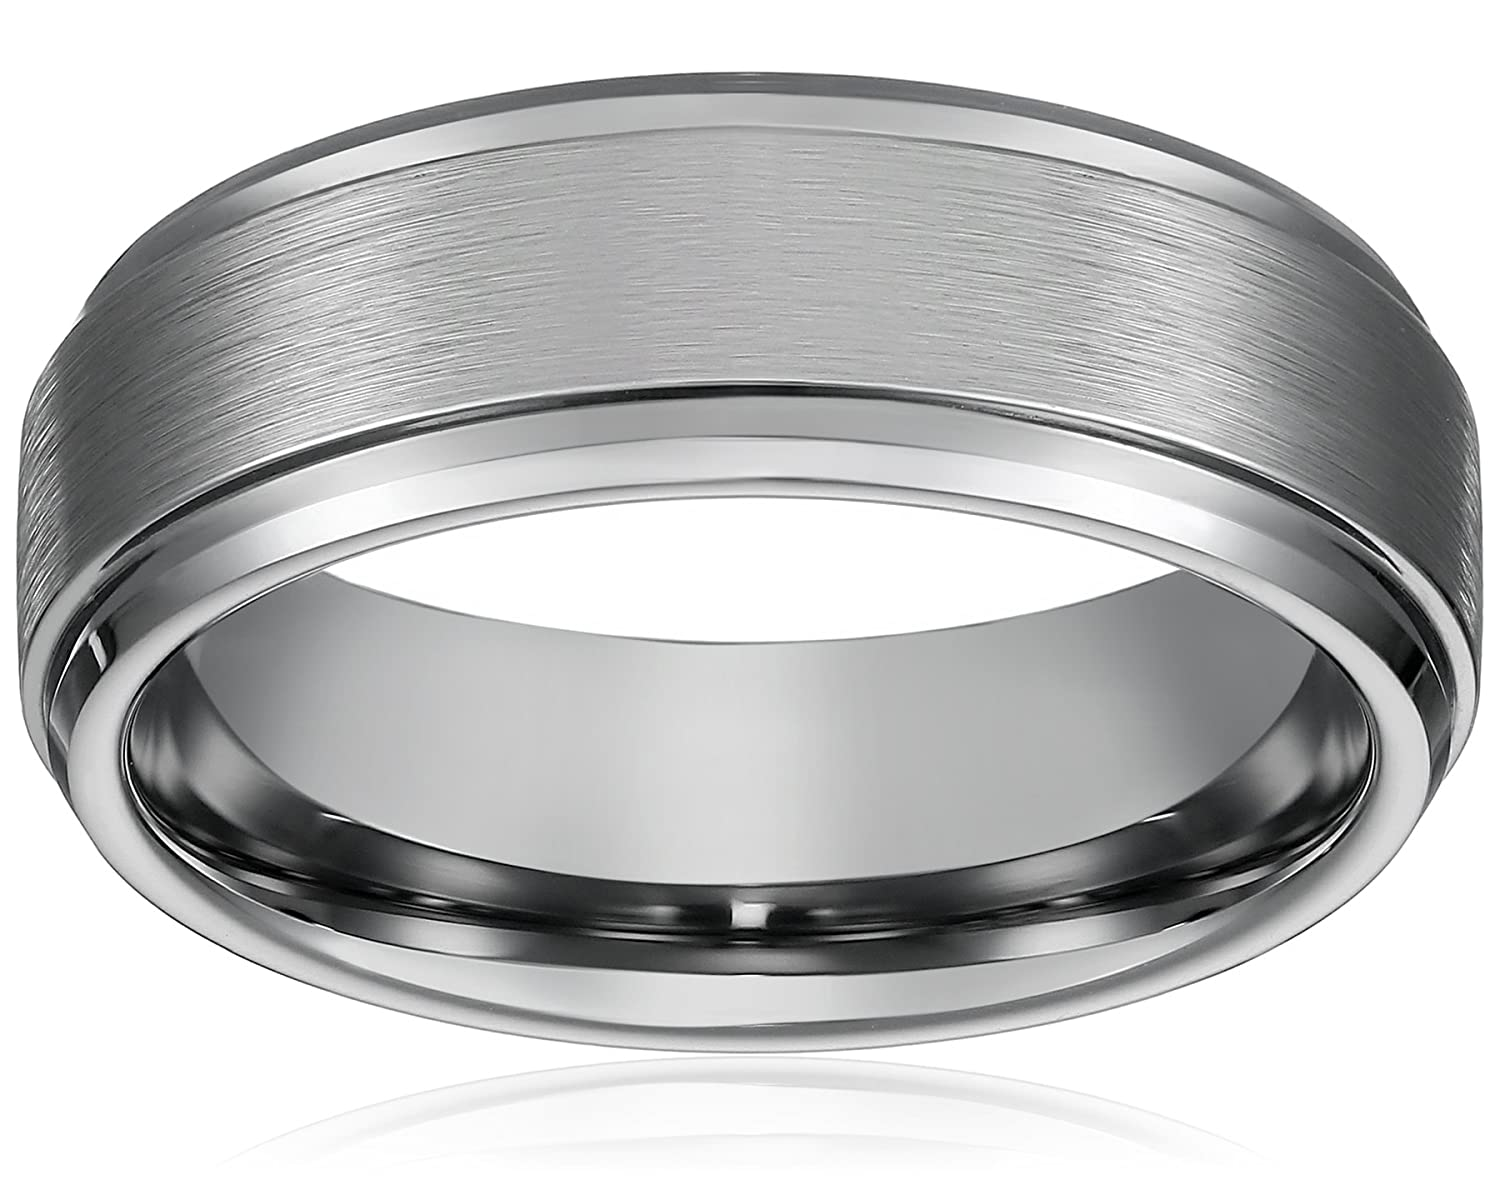 8MM Men's Titanium Ring Wedding Band with Flat Brushed Top and Polished Finish Edges Cavalier Jewelers